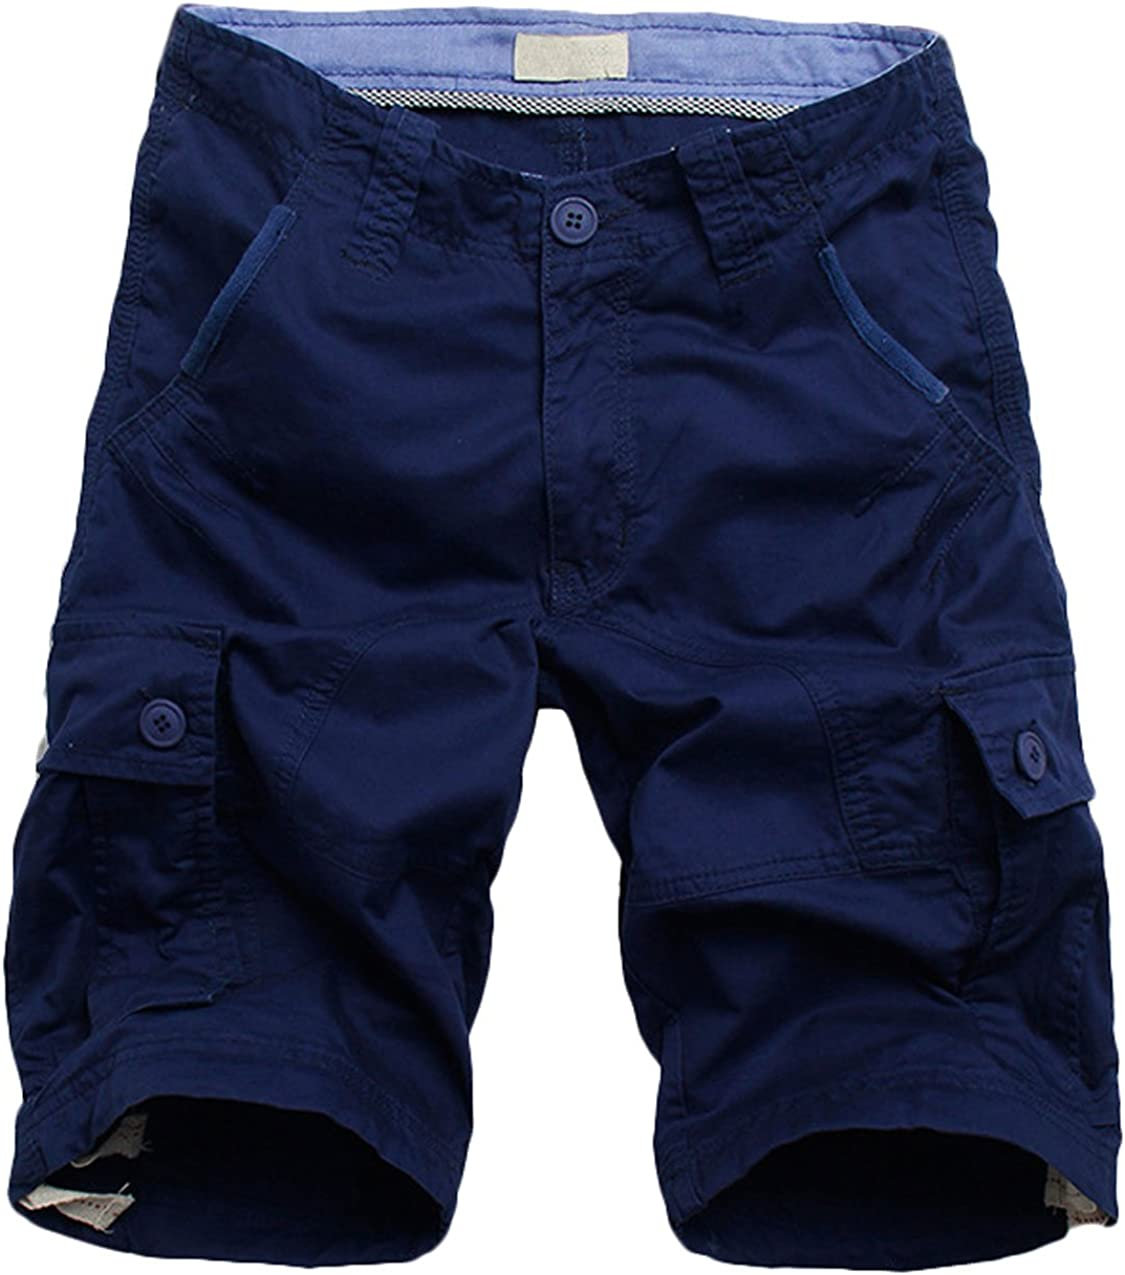 Youhan Mens Casual Loose Fitted Multi-Pocket Cotton Cargo Shorts